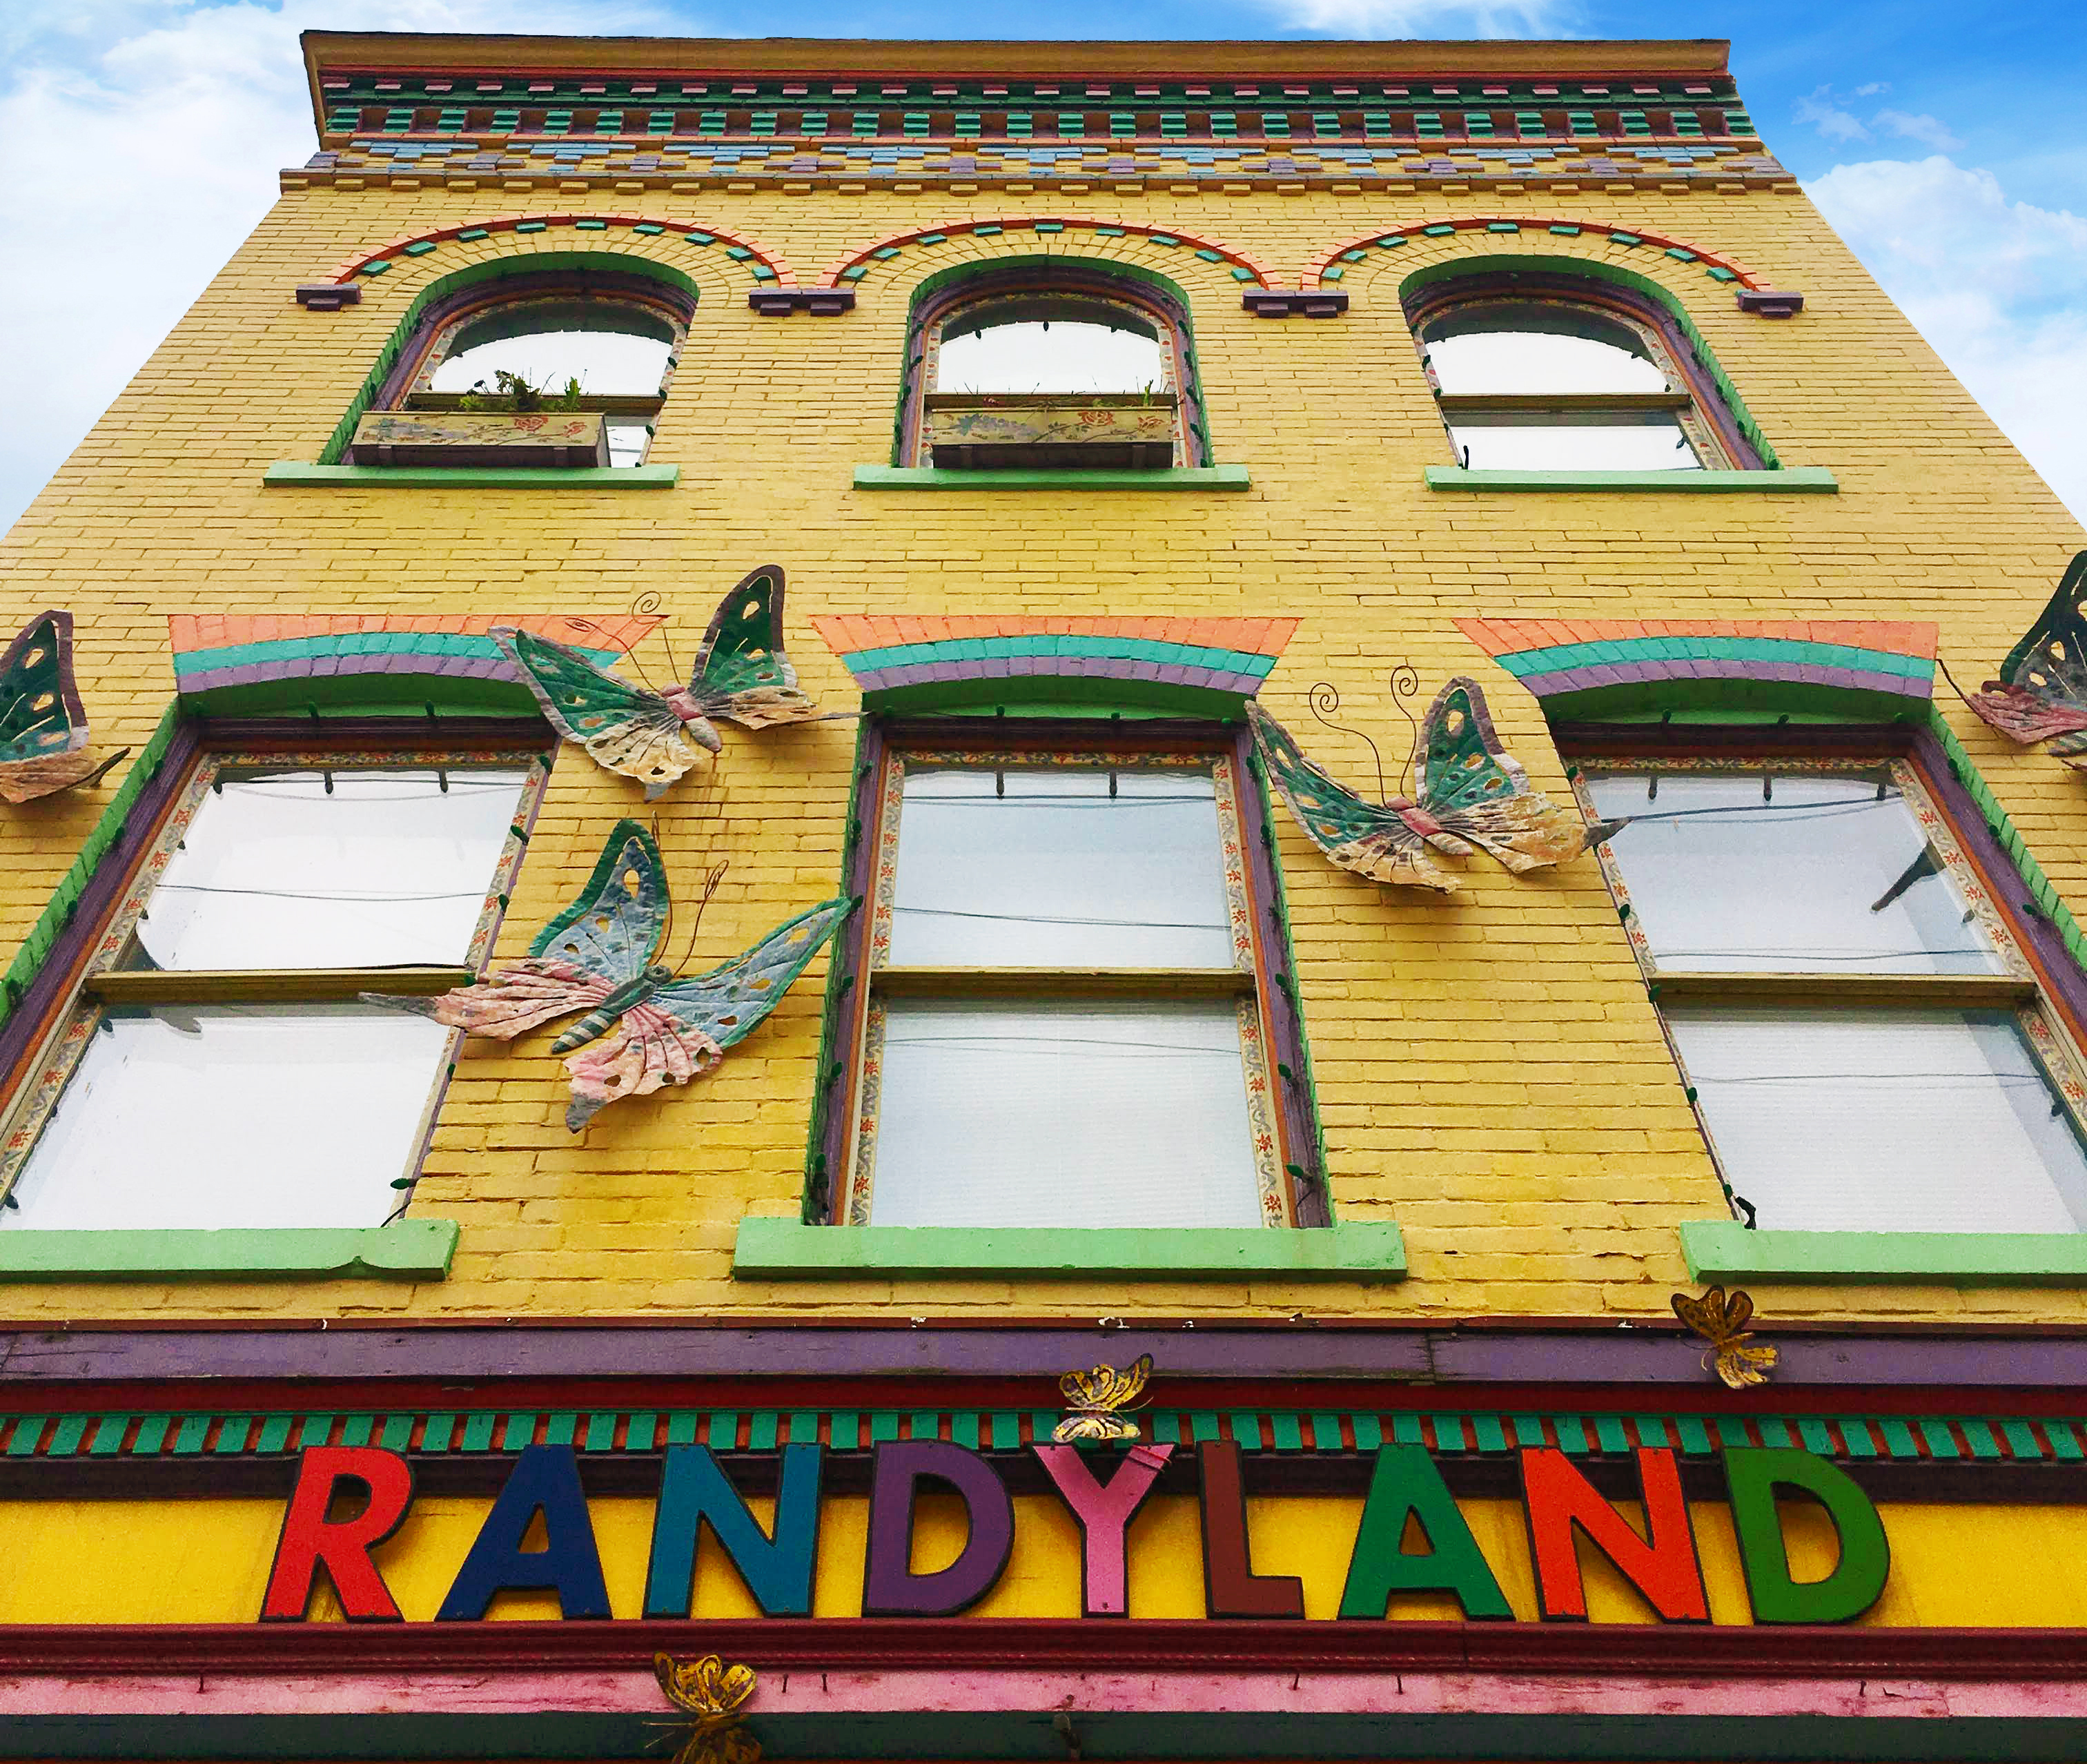 Randy Gilson, the artist who owns and maintains Randyland in Pittsburgh, PA, opens his oasis to the public every day of the week, 10am-7pm, for free.